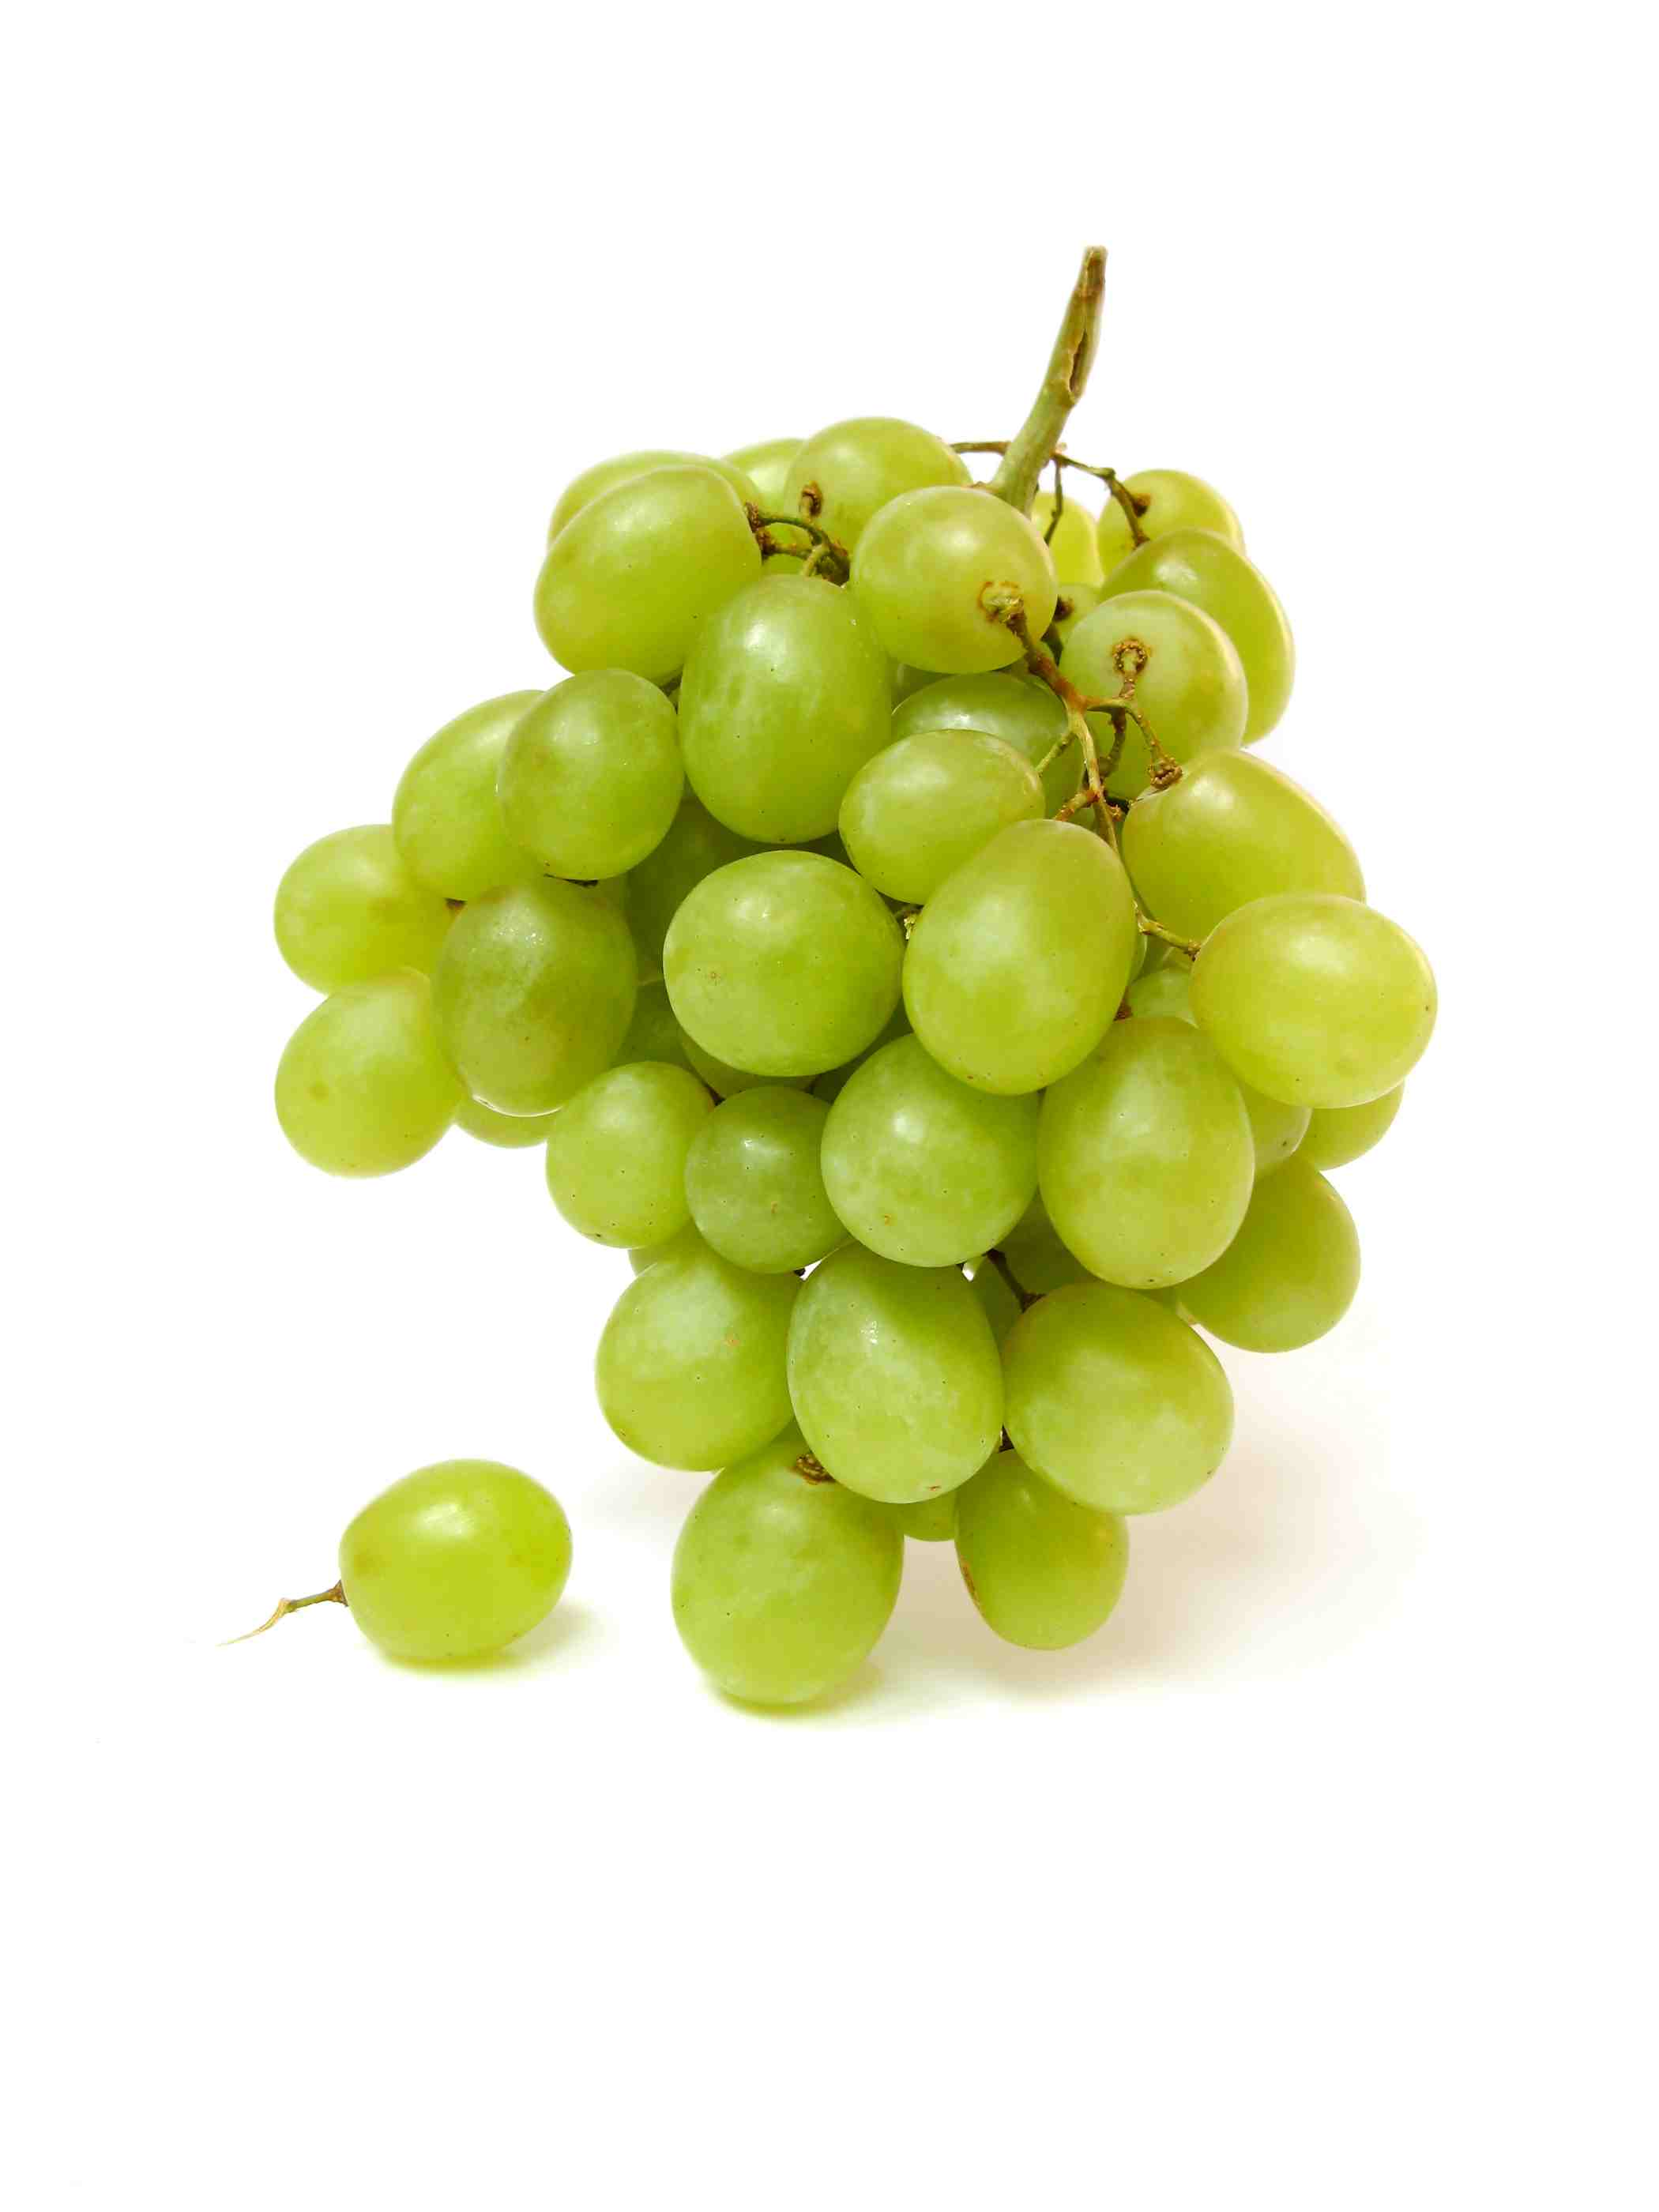 grapes raisin pet dog poison